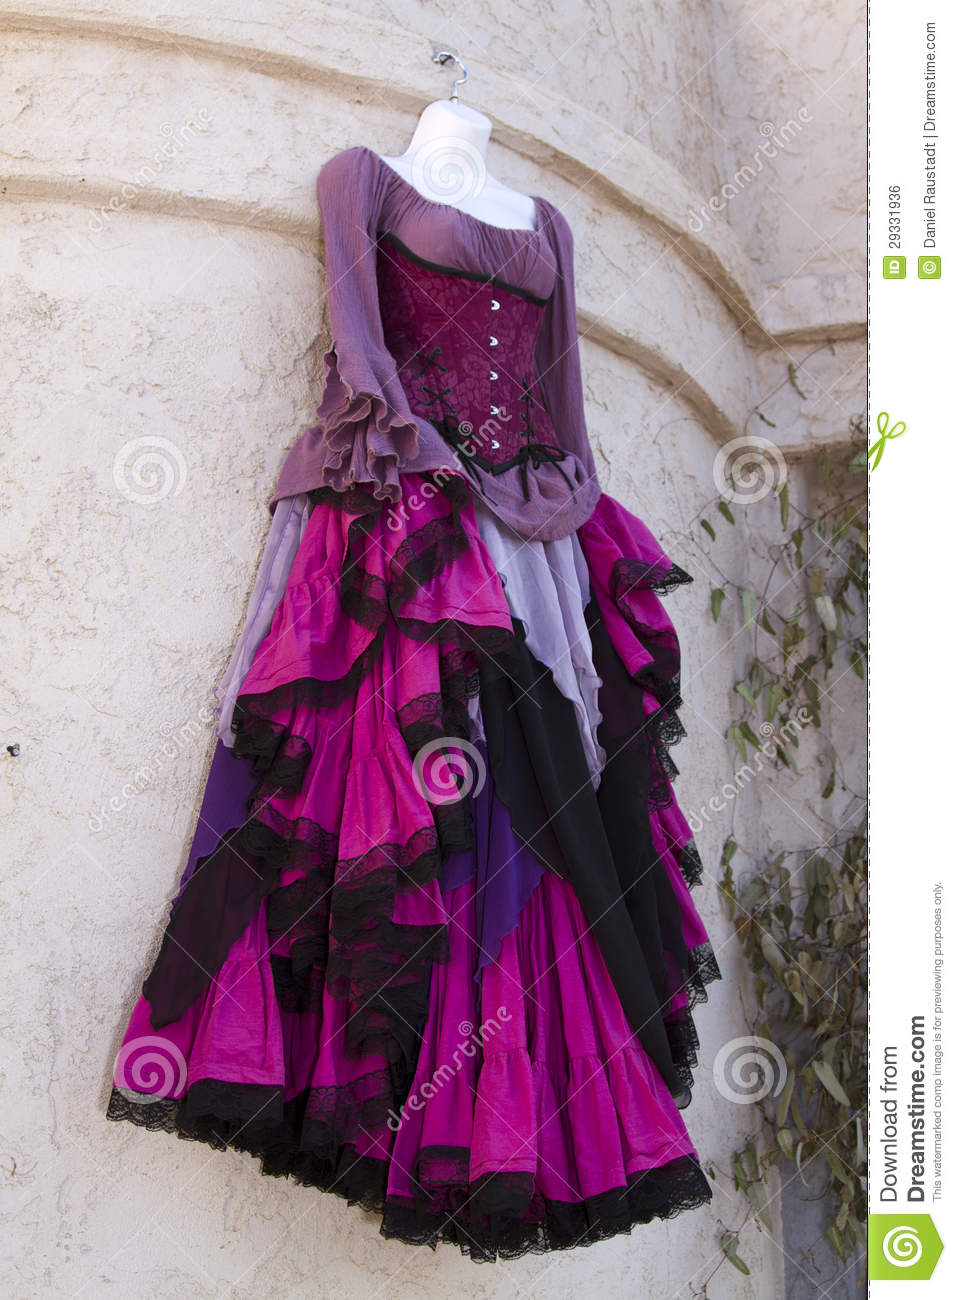 Renaissance Womens Dress Clothing Boutique Royalty Free Stock ...